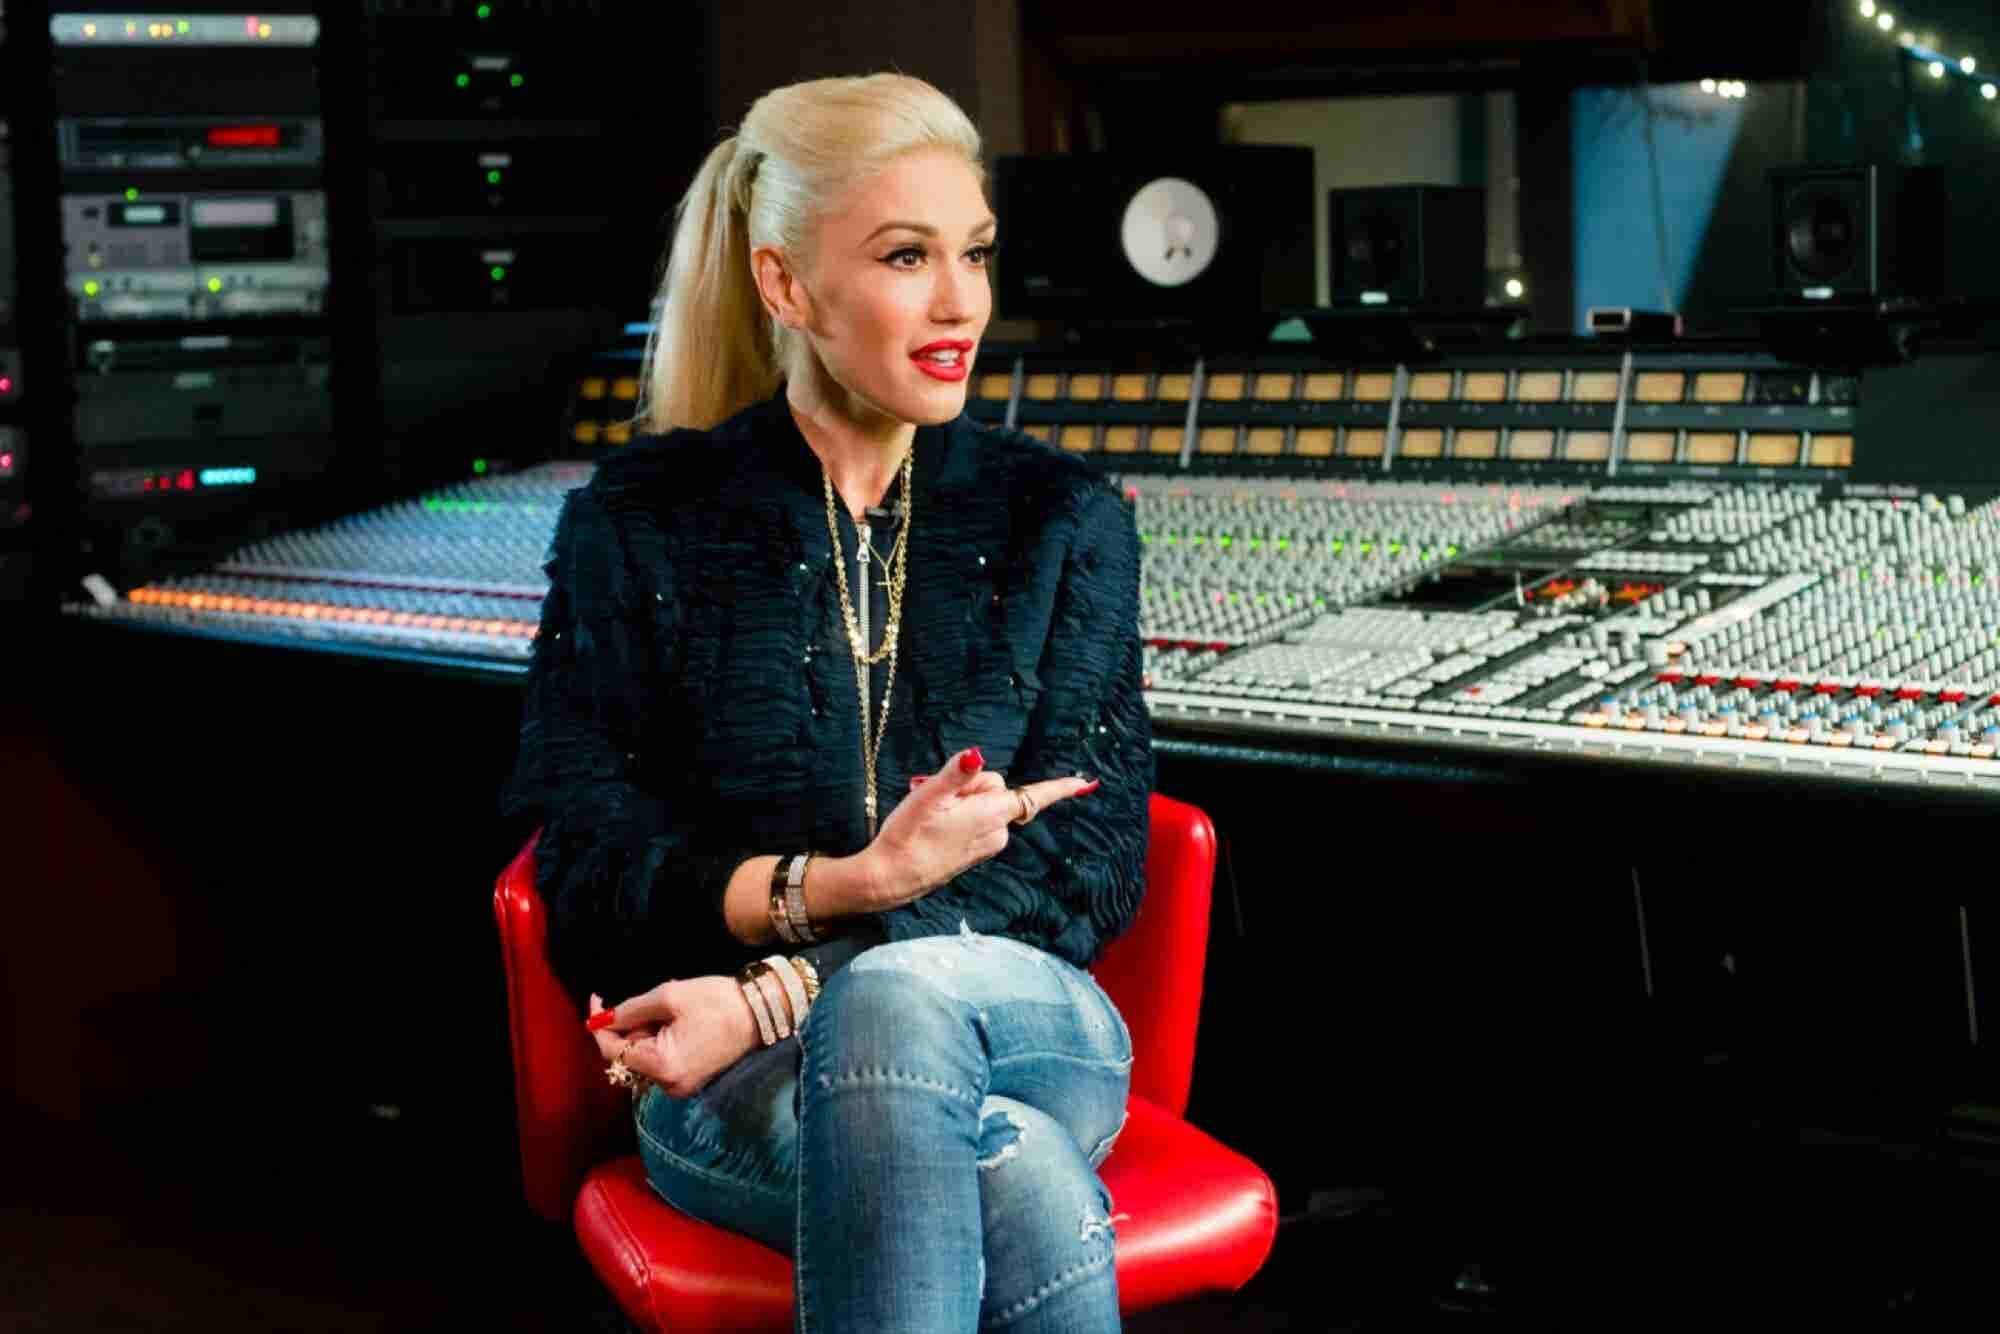 LinkedIn Flexes Its Star Power With Addition of Gwen Stefani